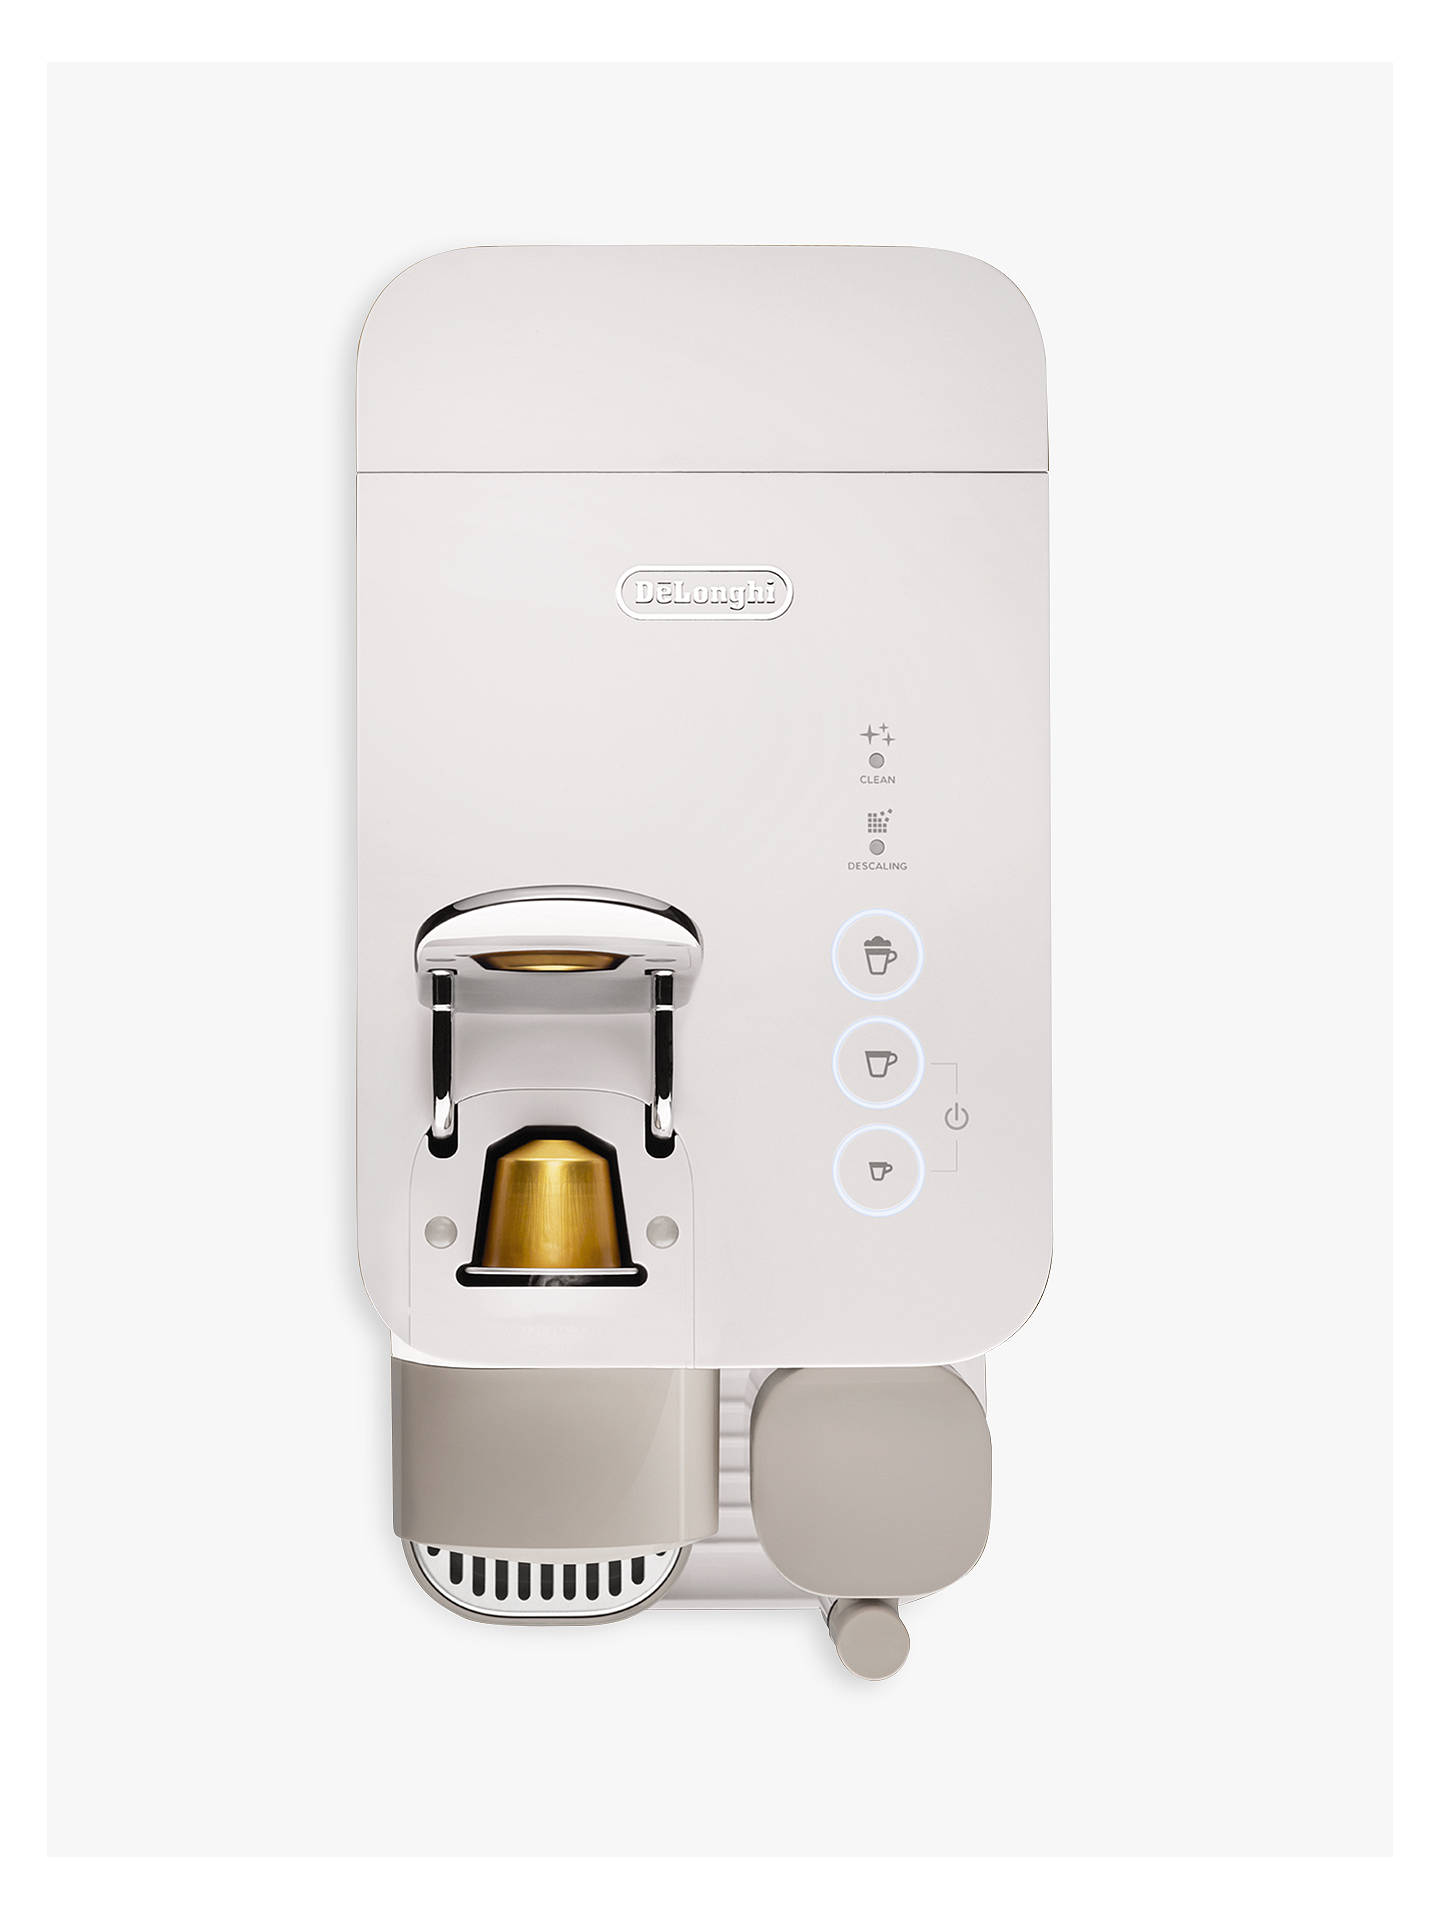 Buy Nespresso Lattissima One Coffee Machine, White Online at johnlewis.com